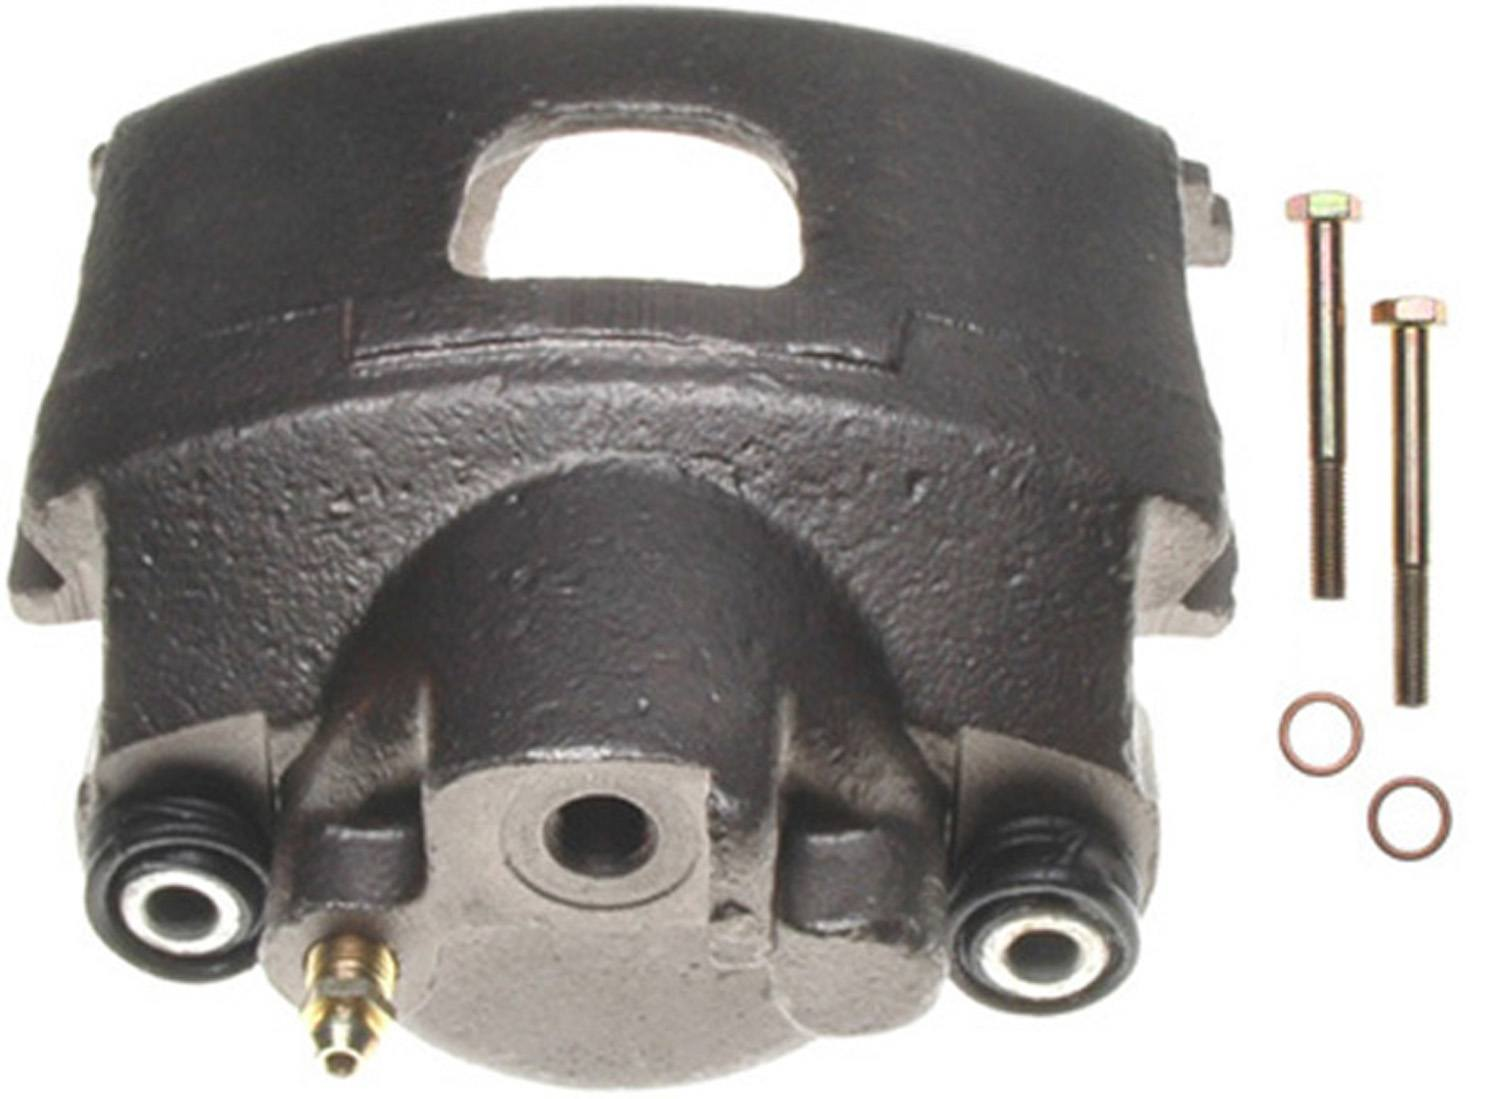 ACDELCO PROFESSIONAL BRAKES - Reman Friction Ready Non-Coated Disc Brake Caliper - ADU 18FR993